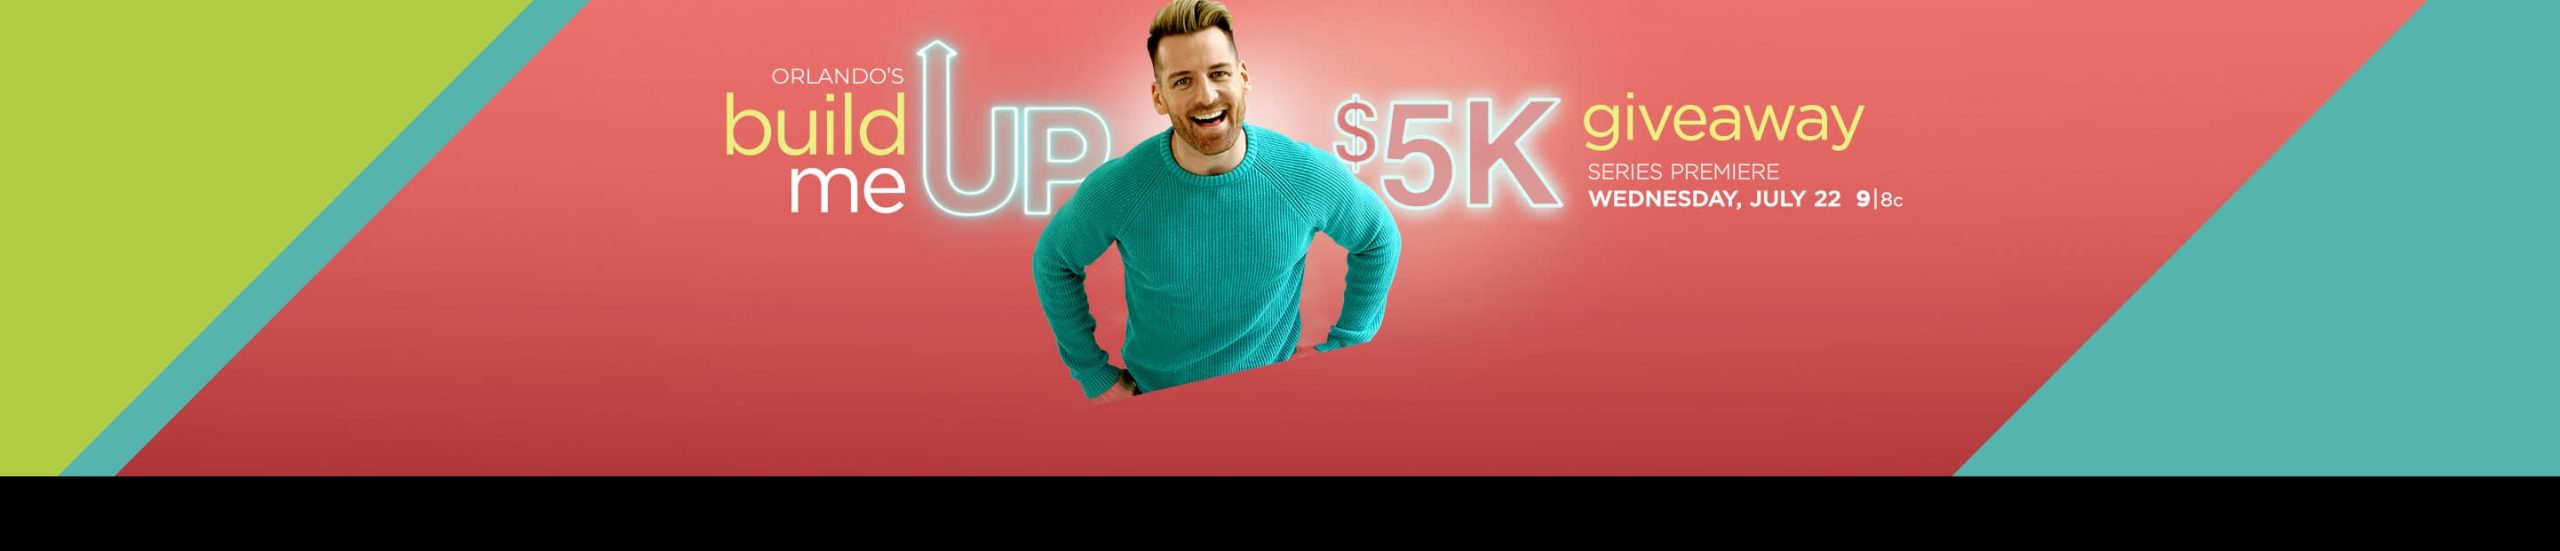 HGTV Orlando's Build Me Up $5K Giveaway